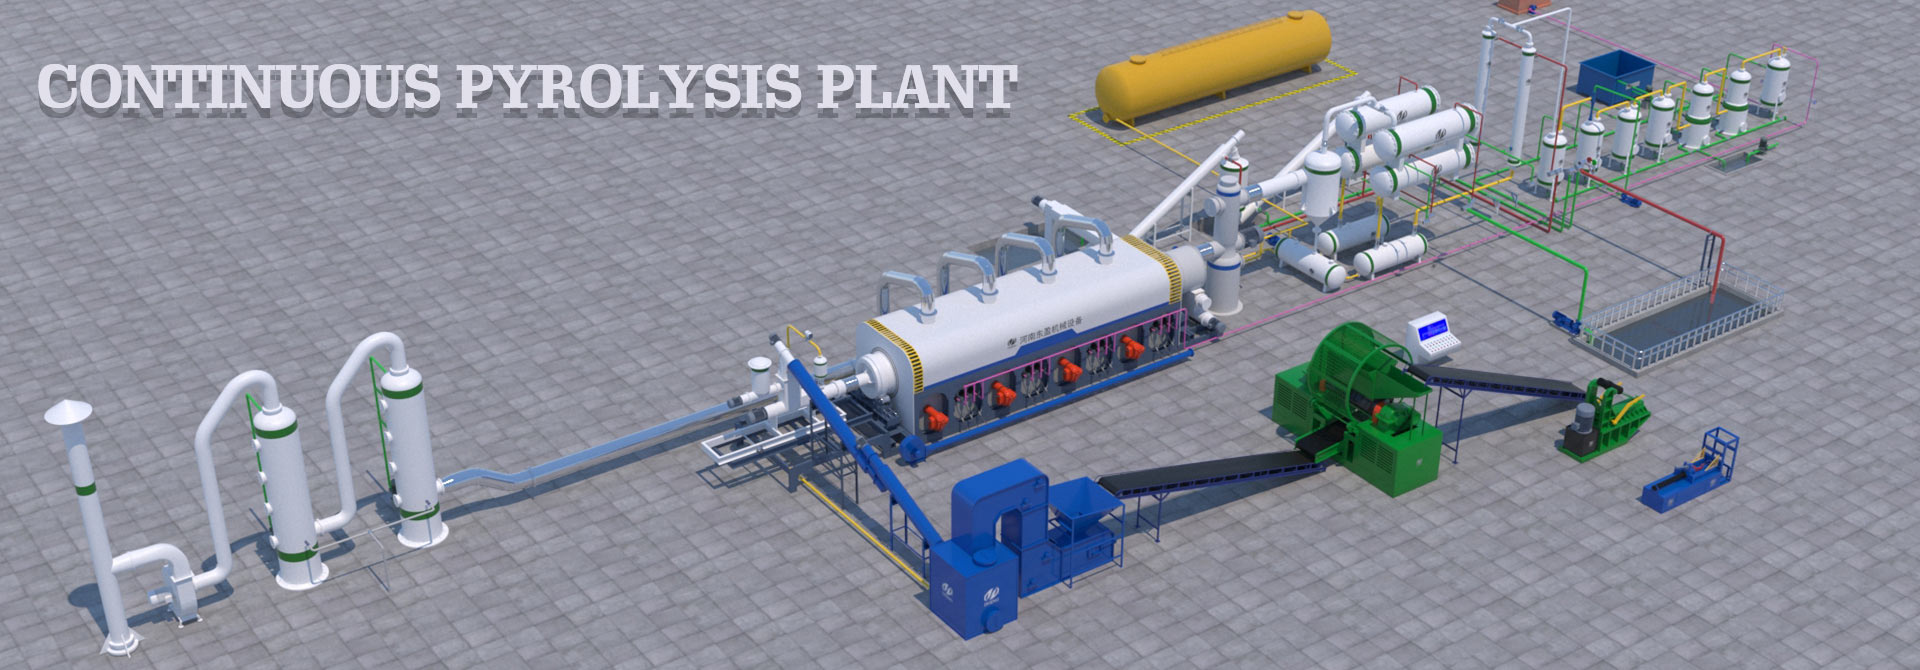 continuous pyrolysis plant